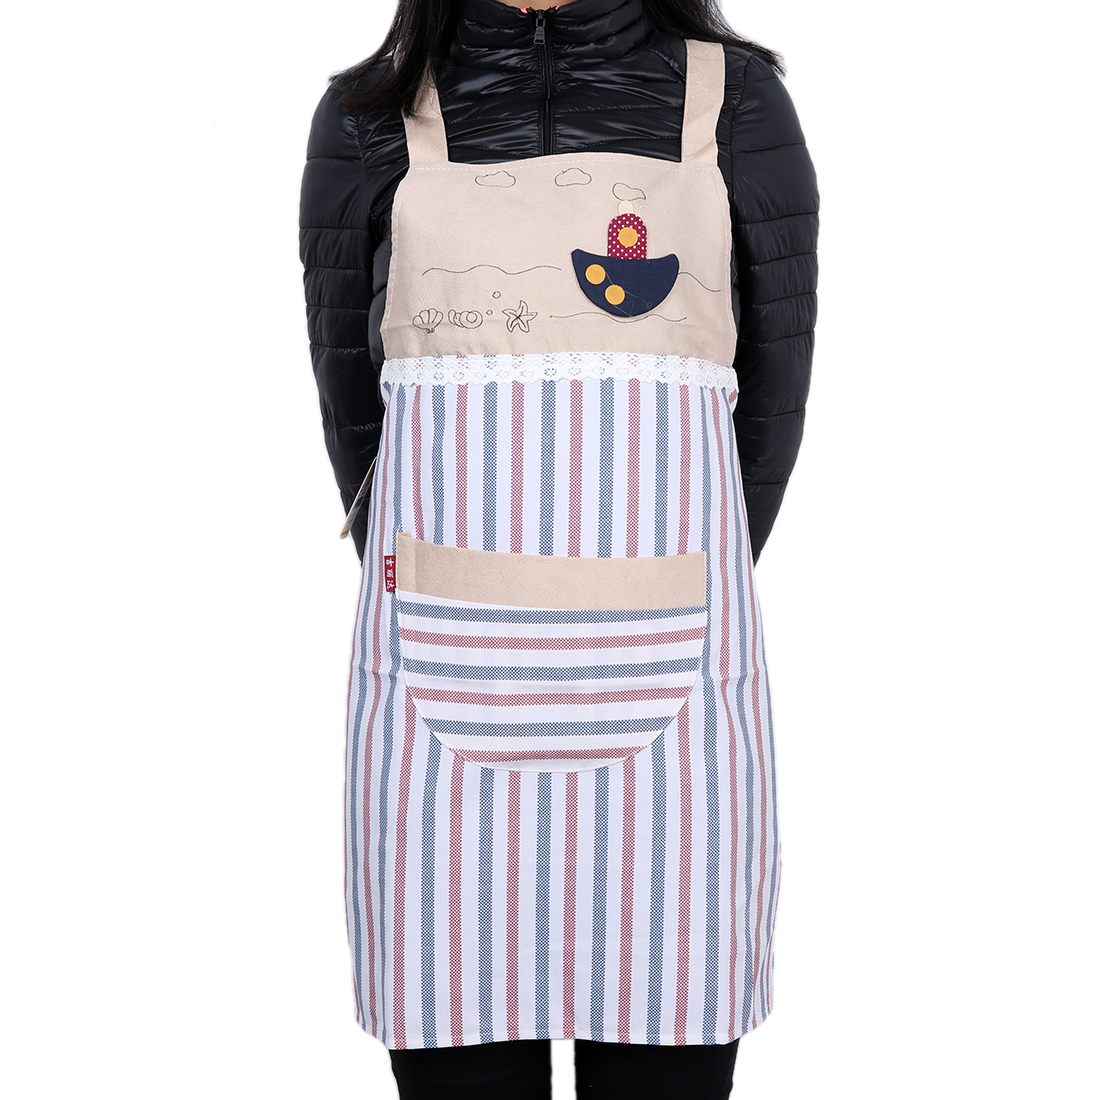 Red and Blue Vertical Stripe Kitchen Bib Apron Dress with Pocket